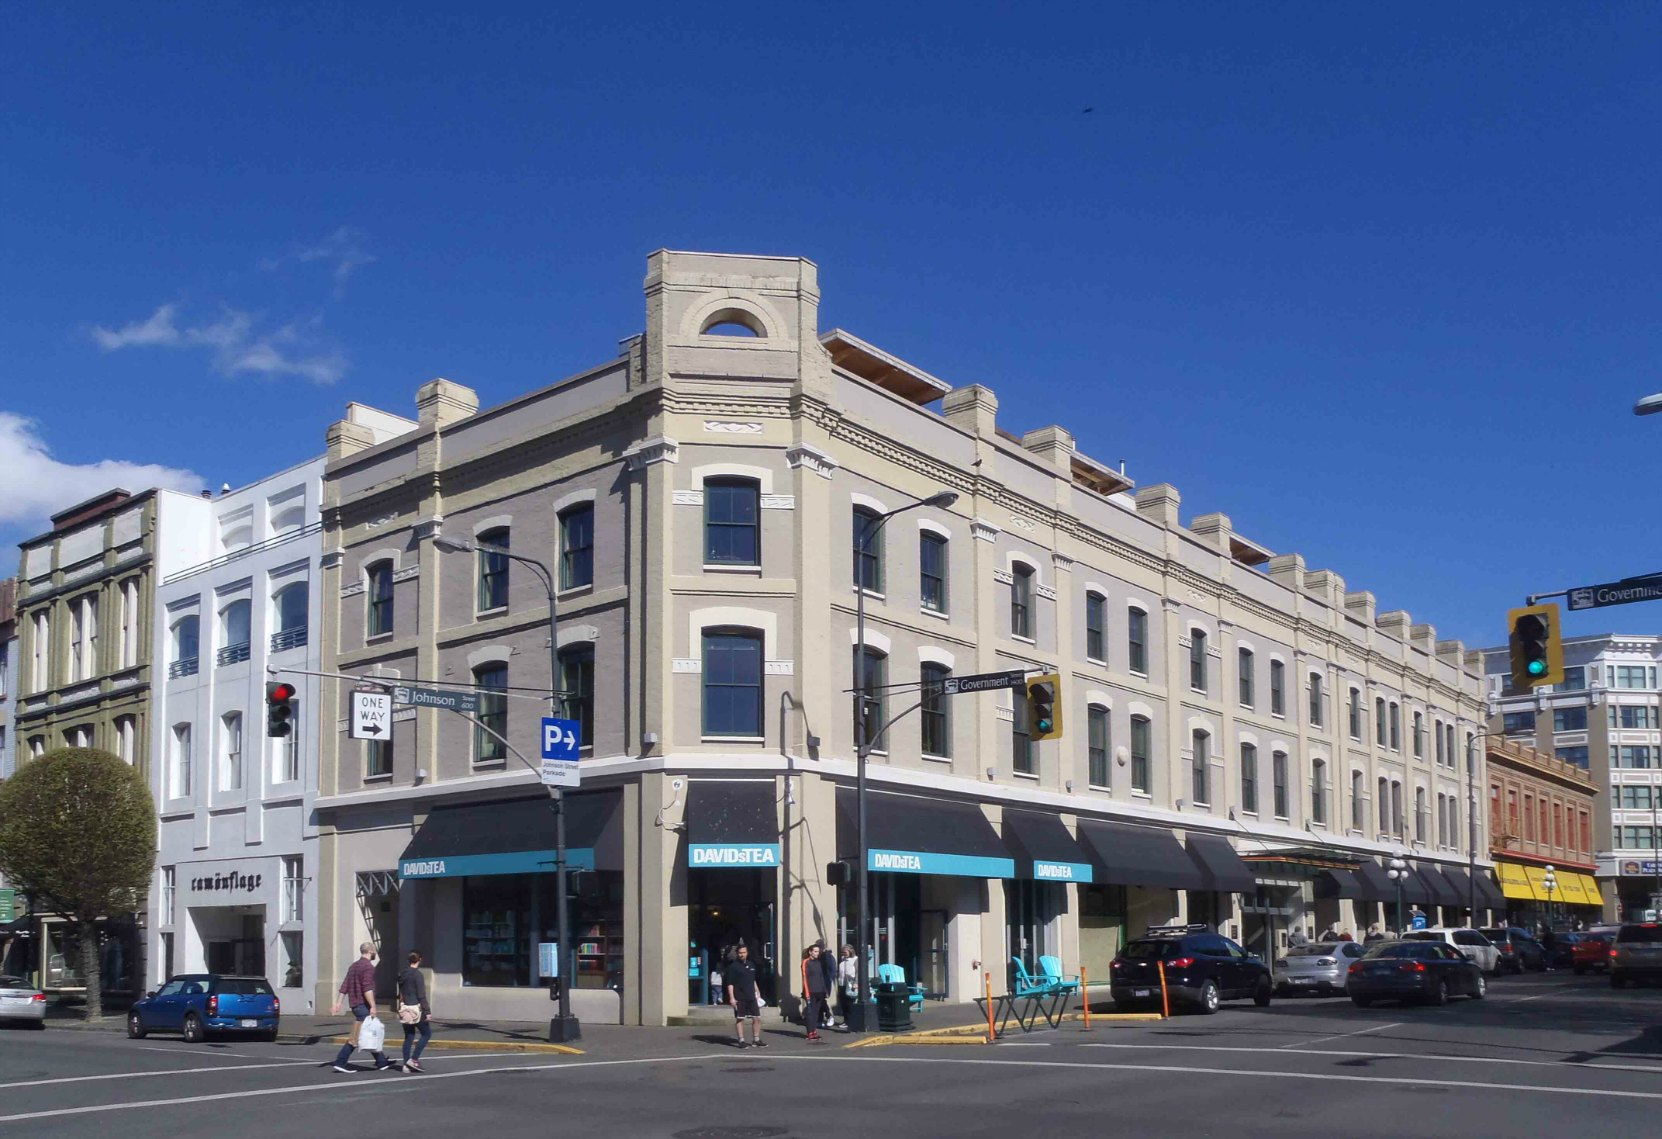 This Heritage Building at 1401 Government Street/606-614 Johnson Street in downtown Victoria was built in 1888 as a store for Edward G. Prior's hardware business, E.G. Prior & Co.